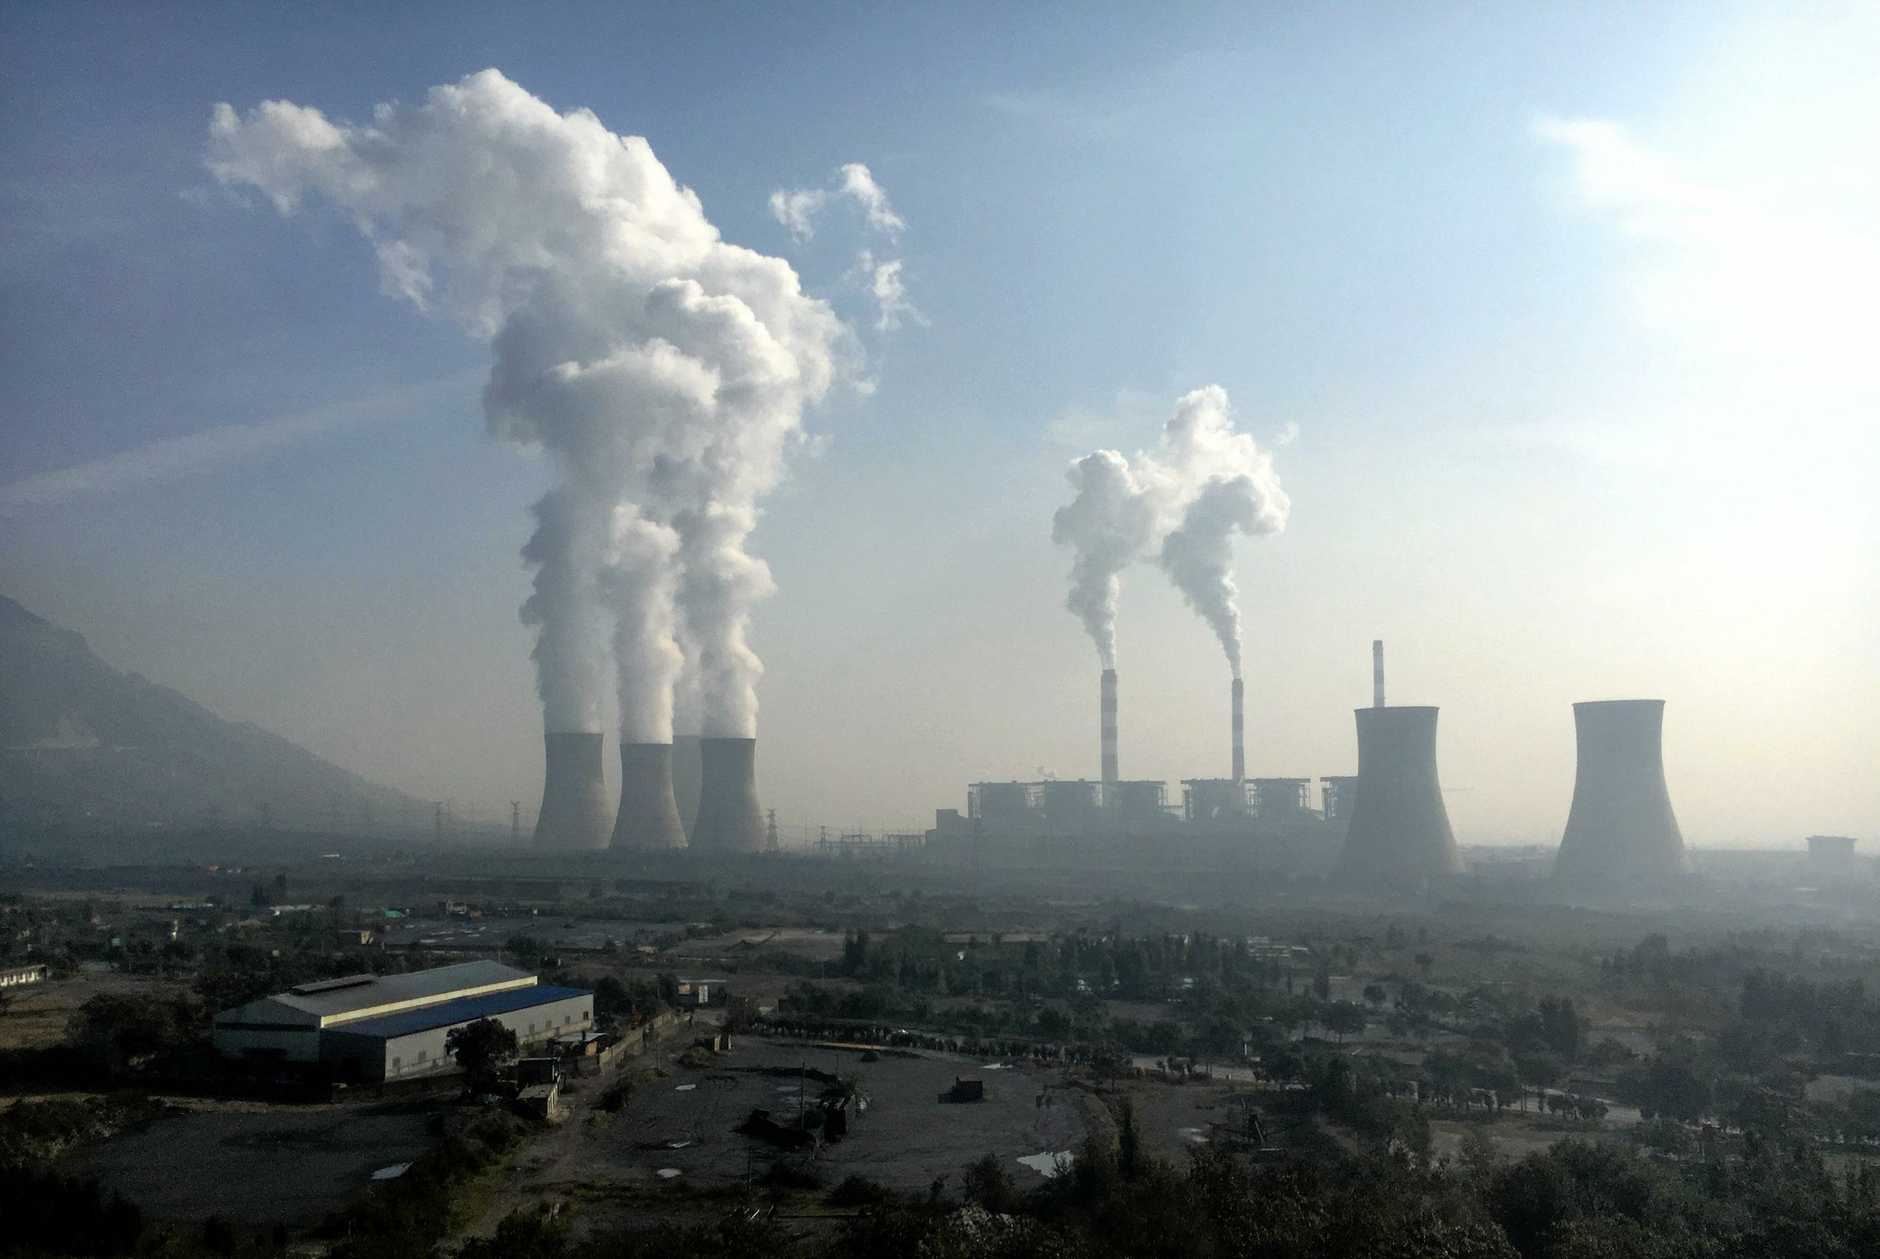 Smoke and steam are discharged from chimneys and cooling towers at a coal-fired power plant in Jiyuan city, central China's Henan province, 30 October 2016.